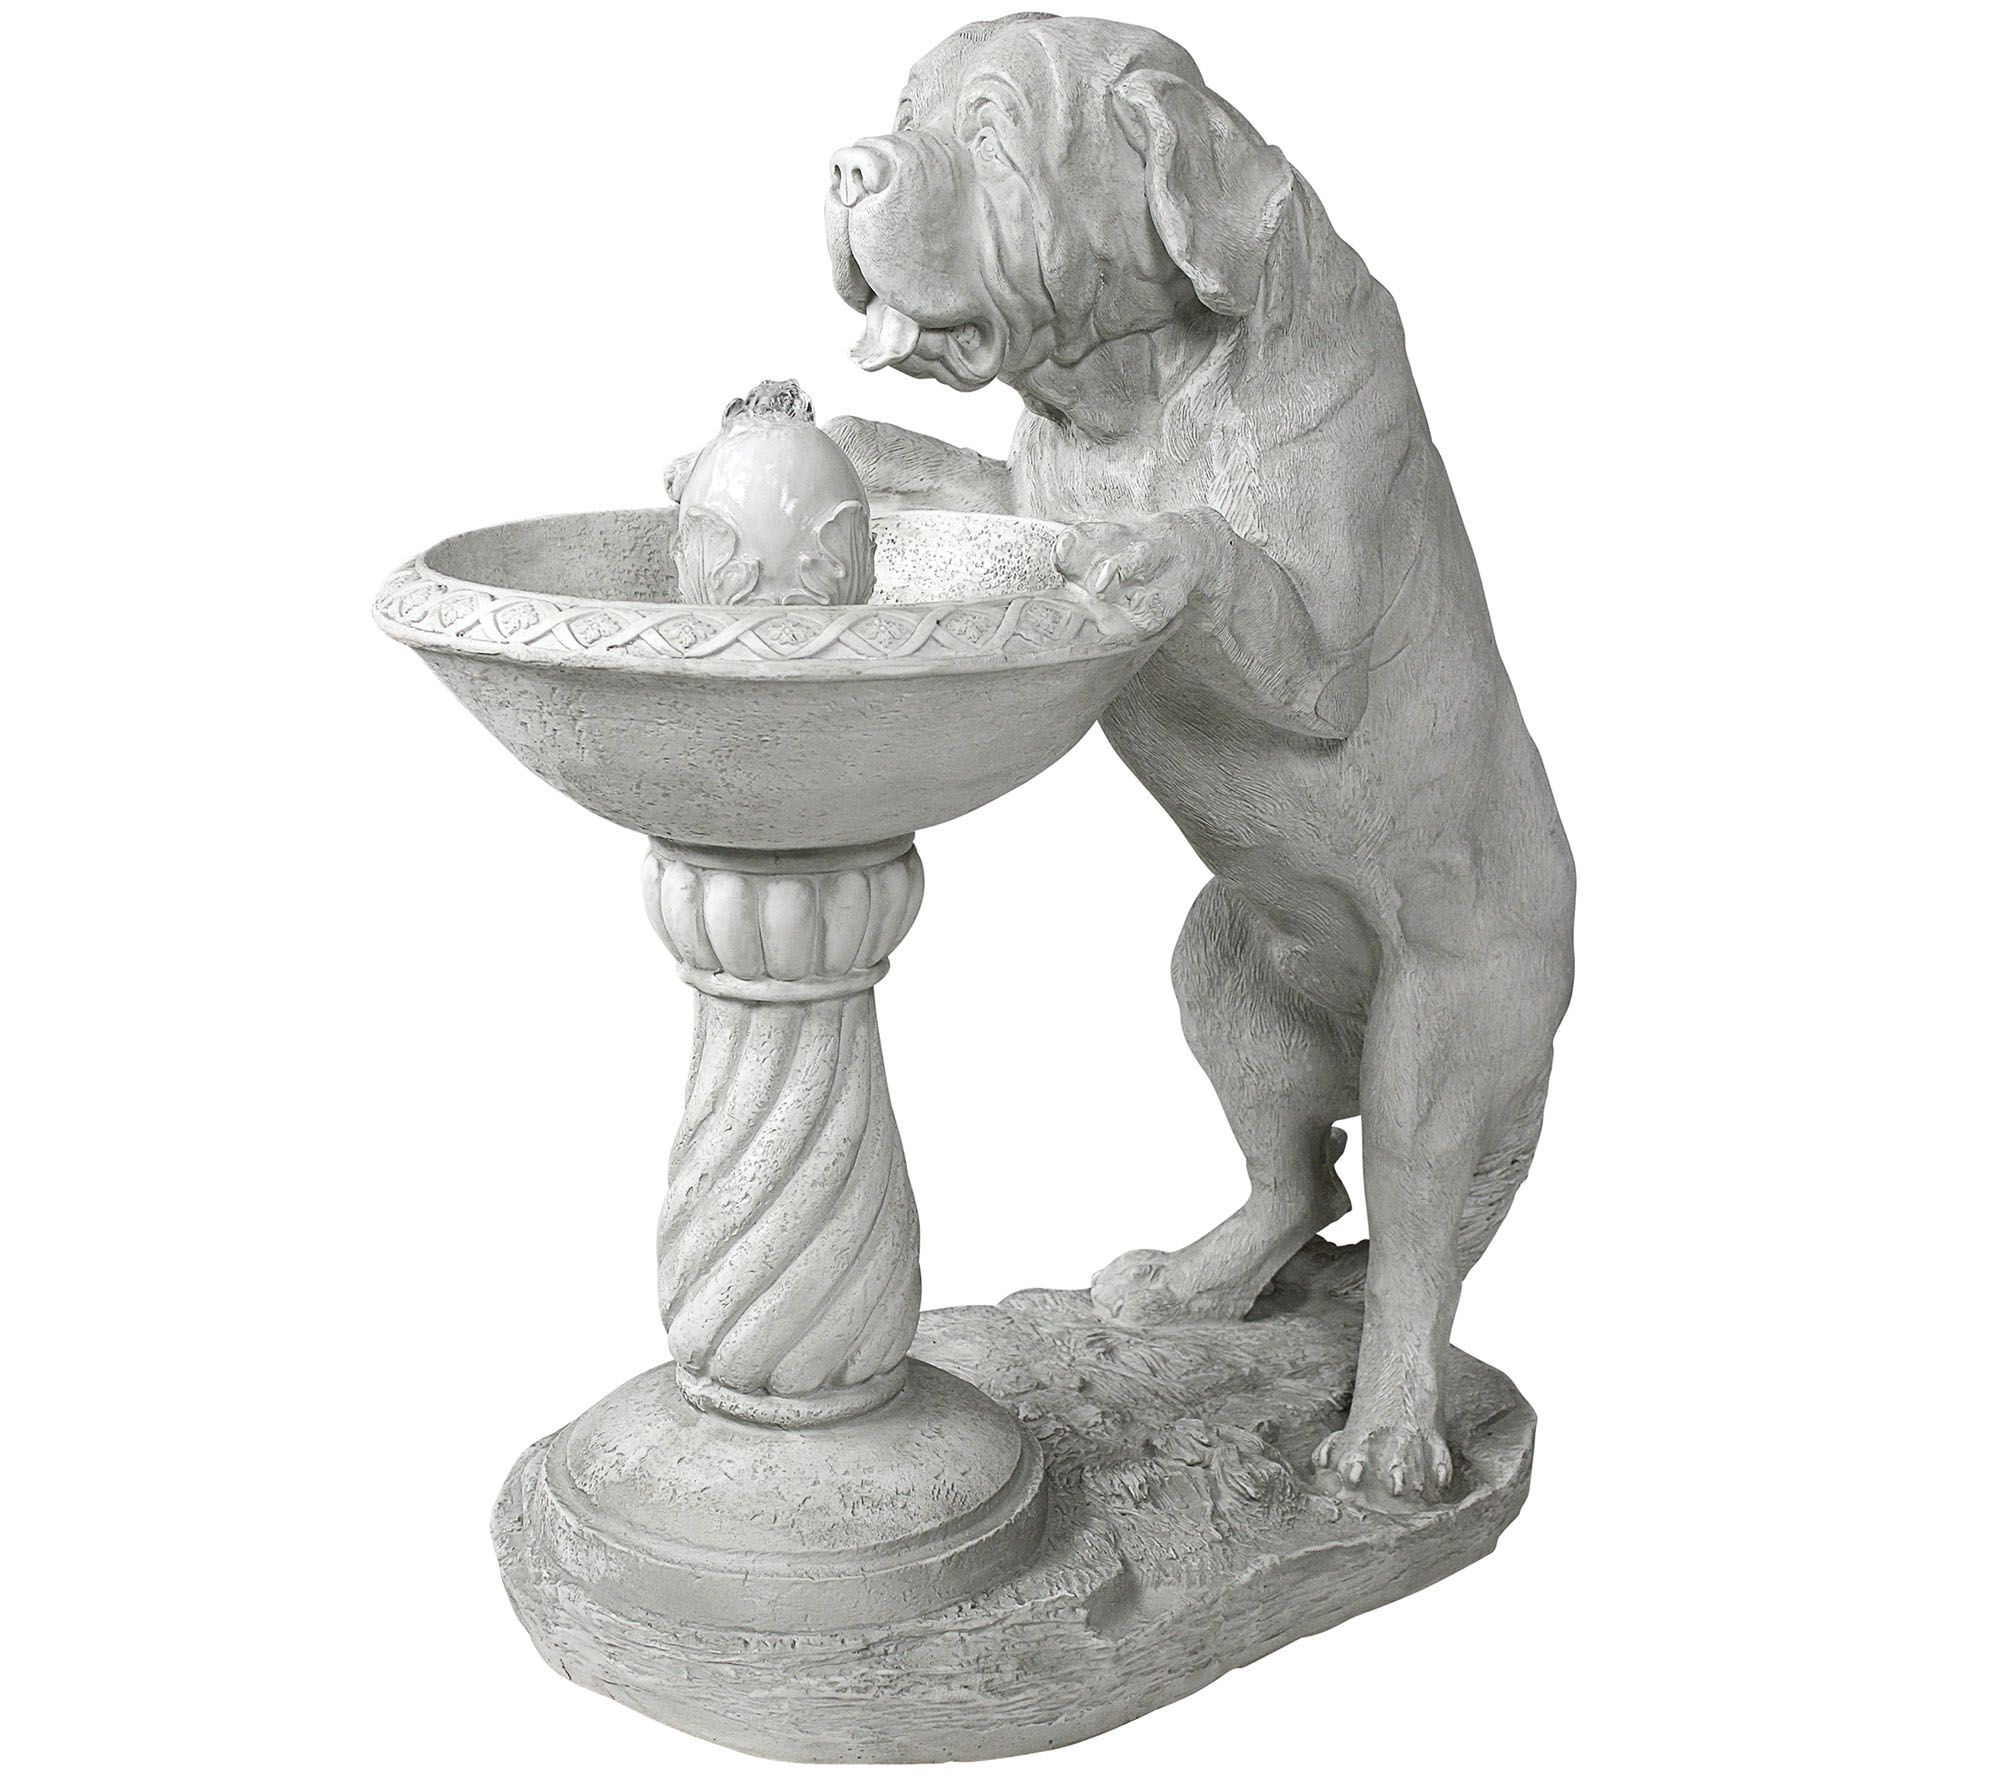 Charmant Design Toscano Thirsty Dog Garden Fountain WithPump   Page 1 U2014 QVC.com